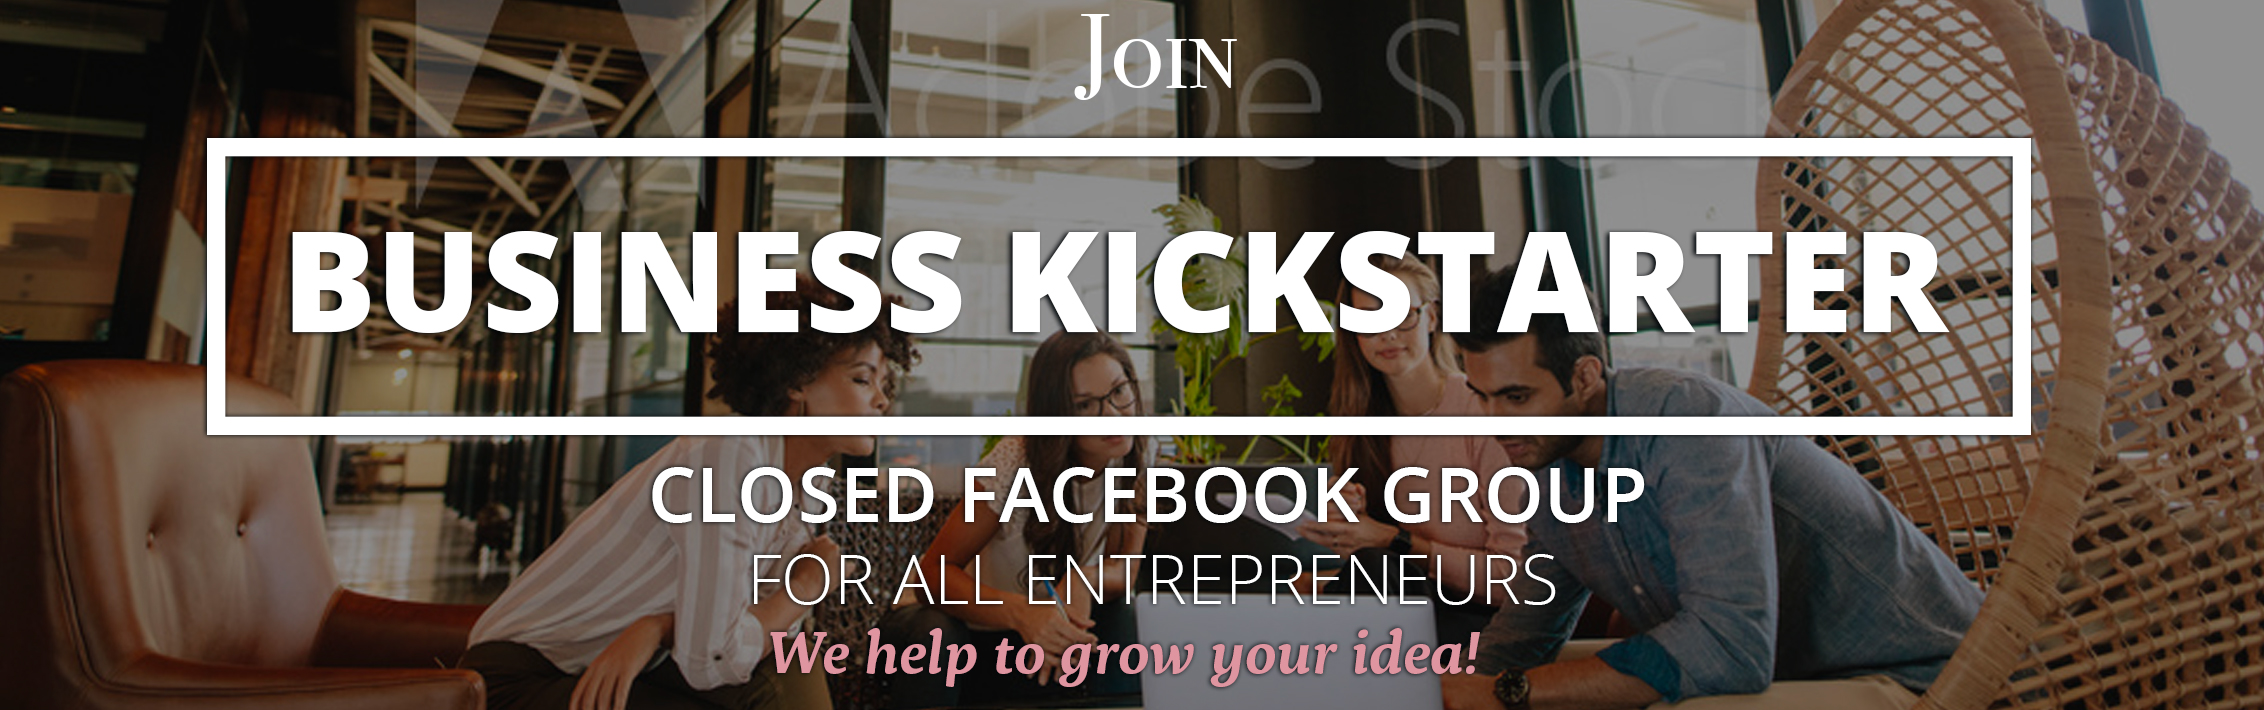 business-kickstarter-fb-group